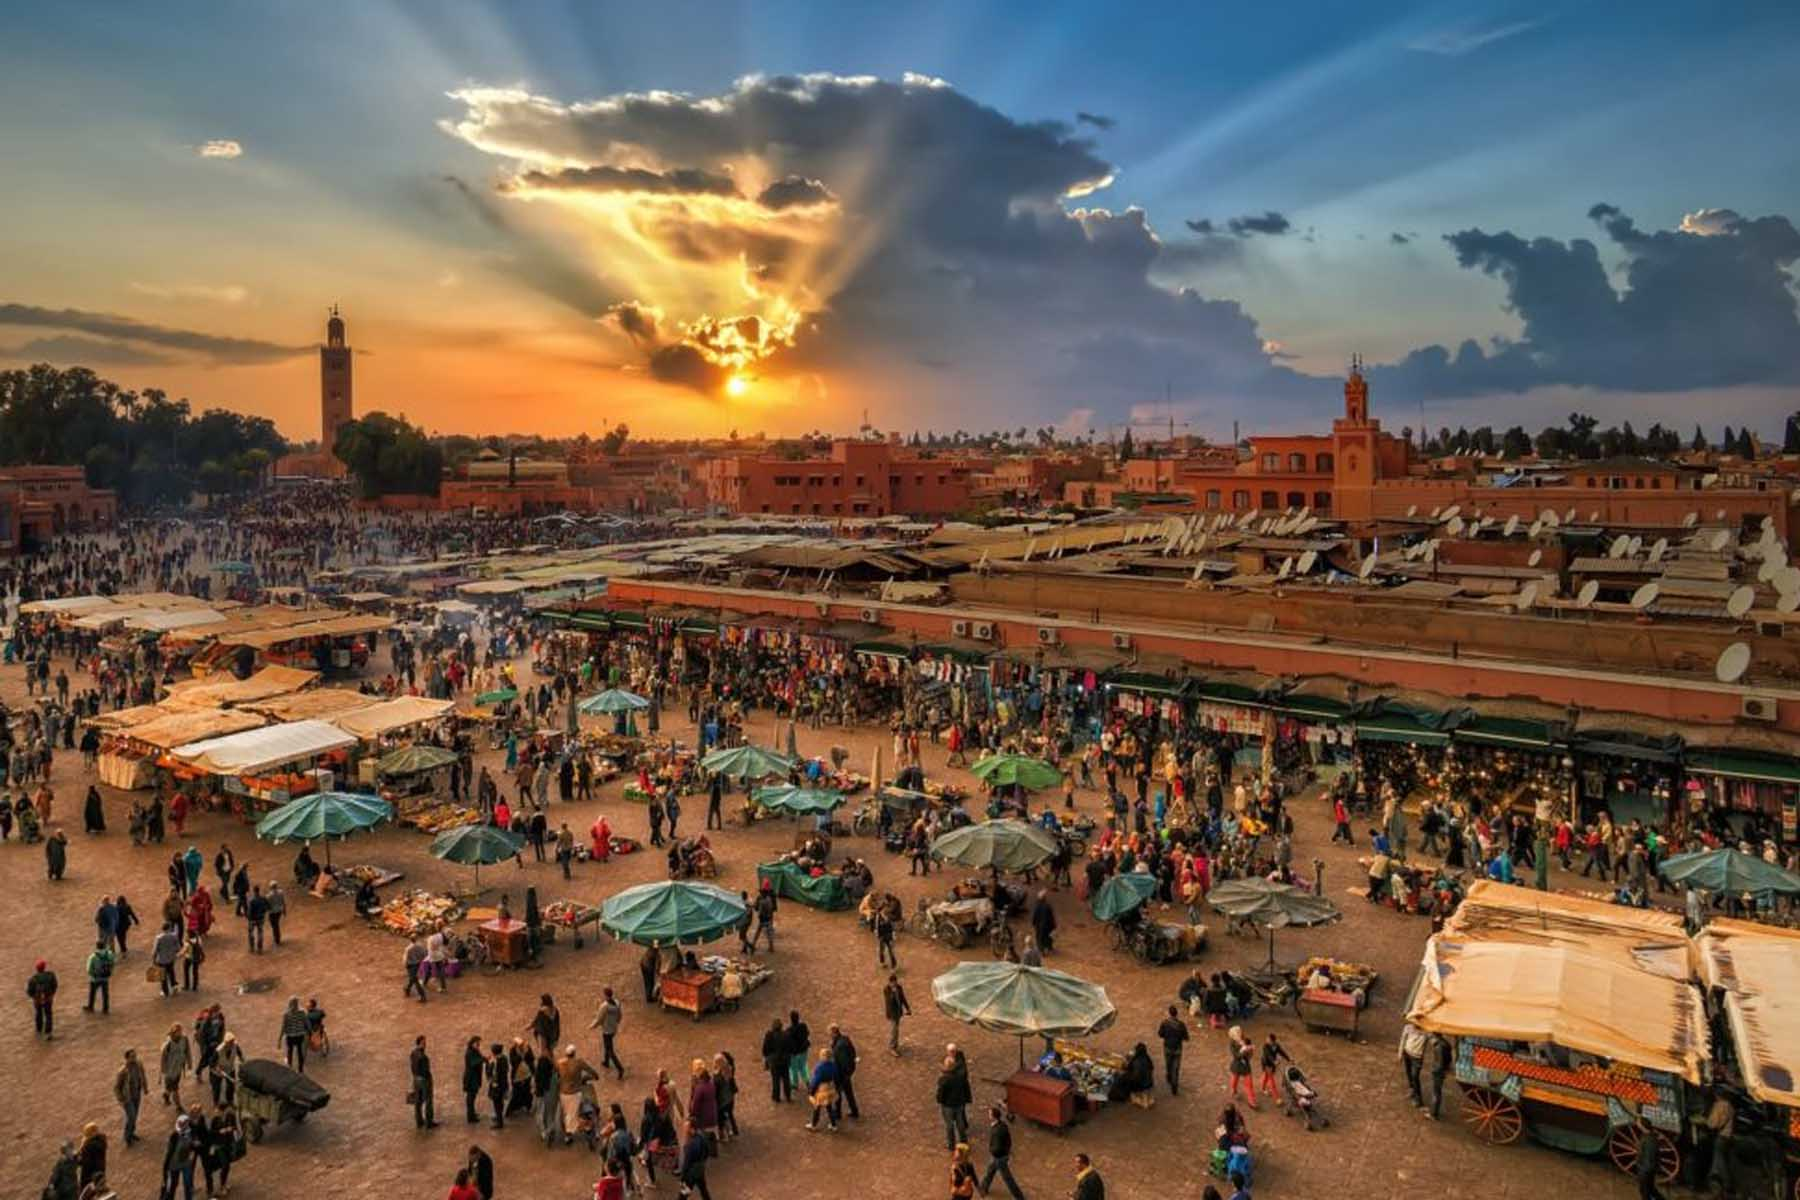 https://www.iktichaftravel.com/wp-content/uploads/2018/04/Marrakech2.jpg